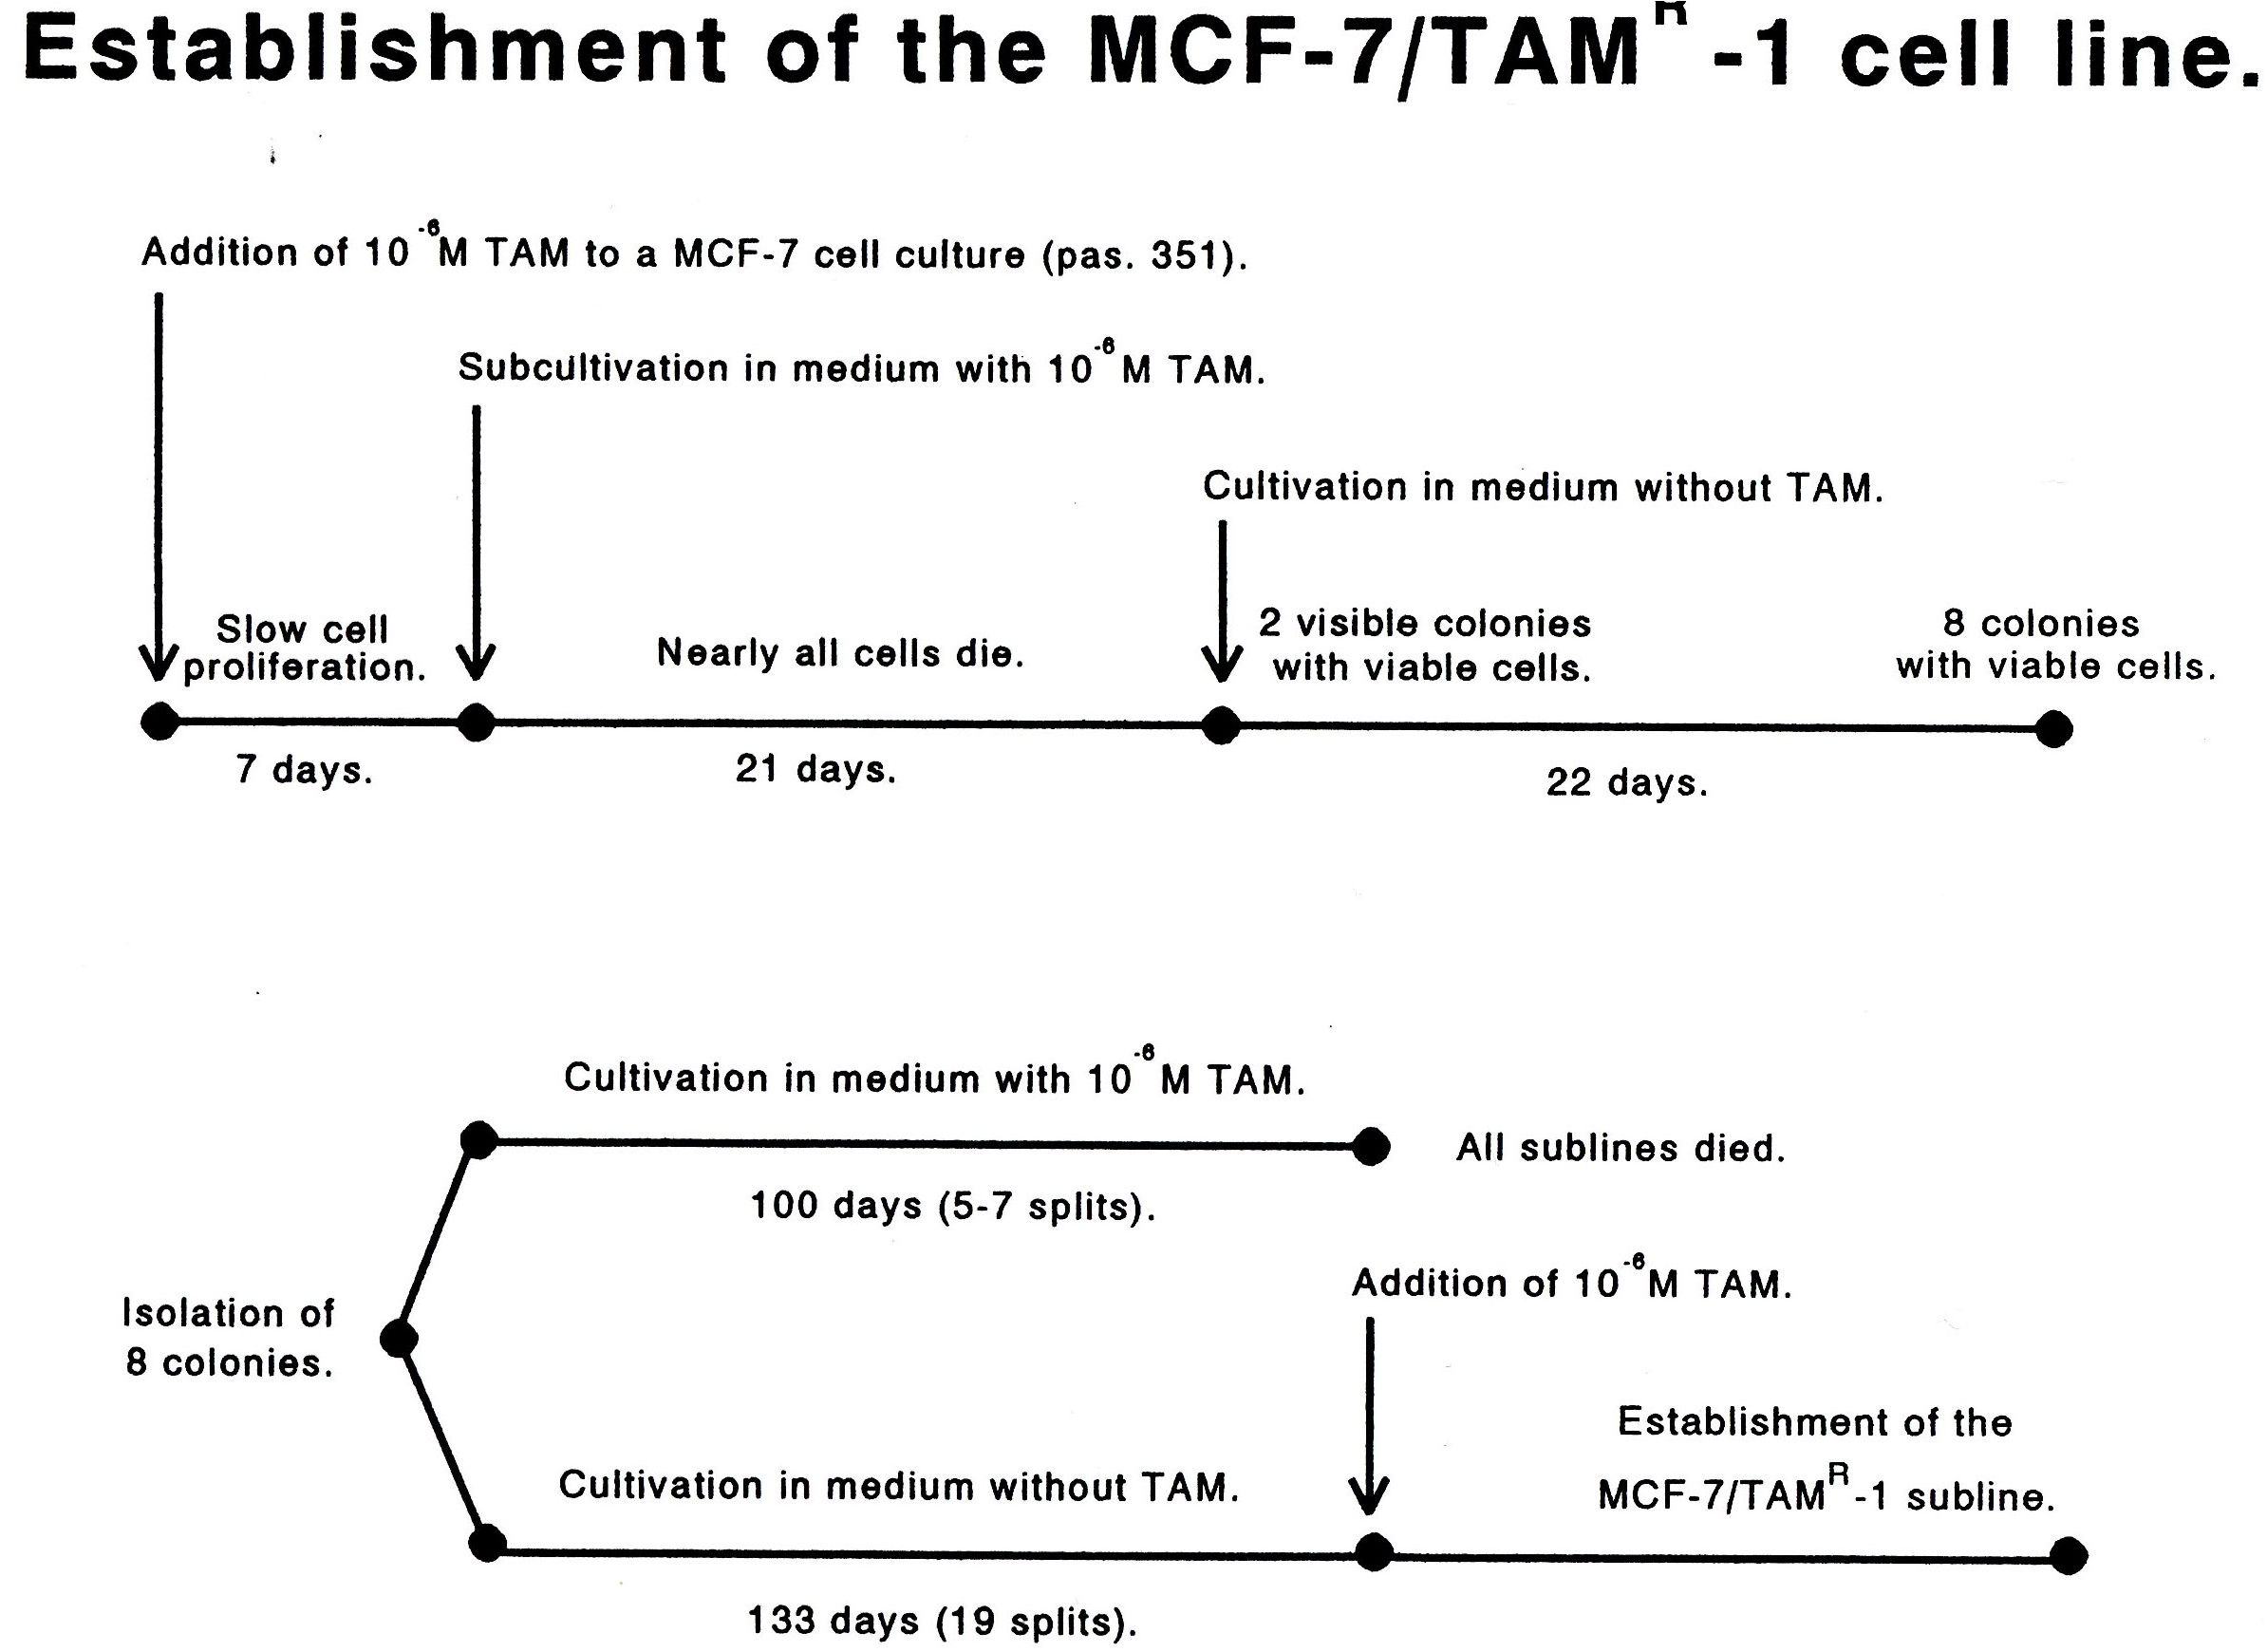 Establishment of MCF-7/TAMR-1 Cell line